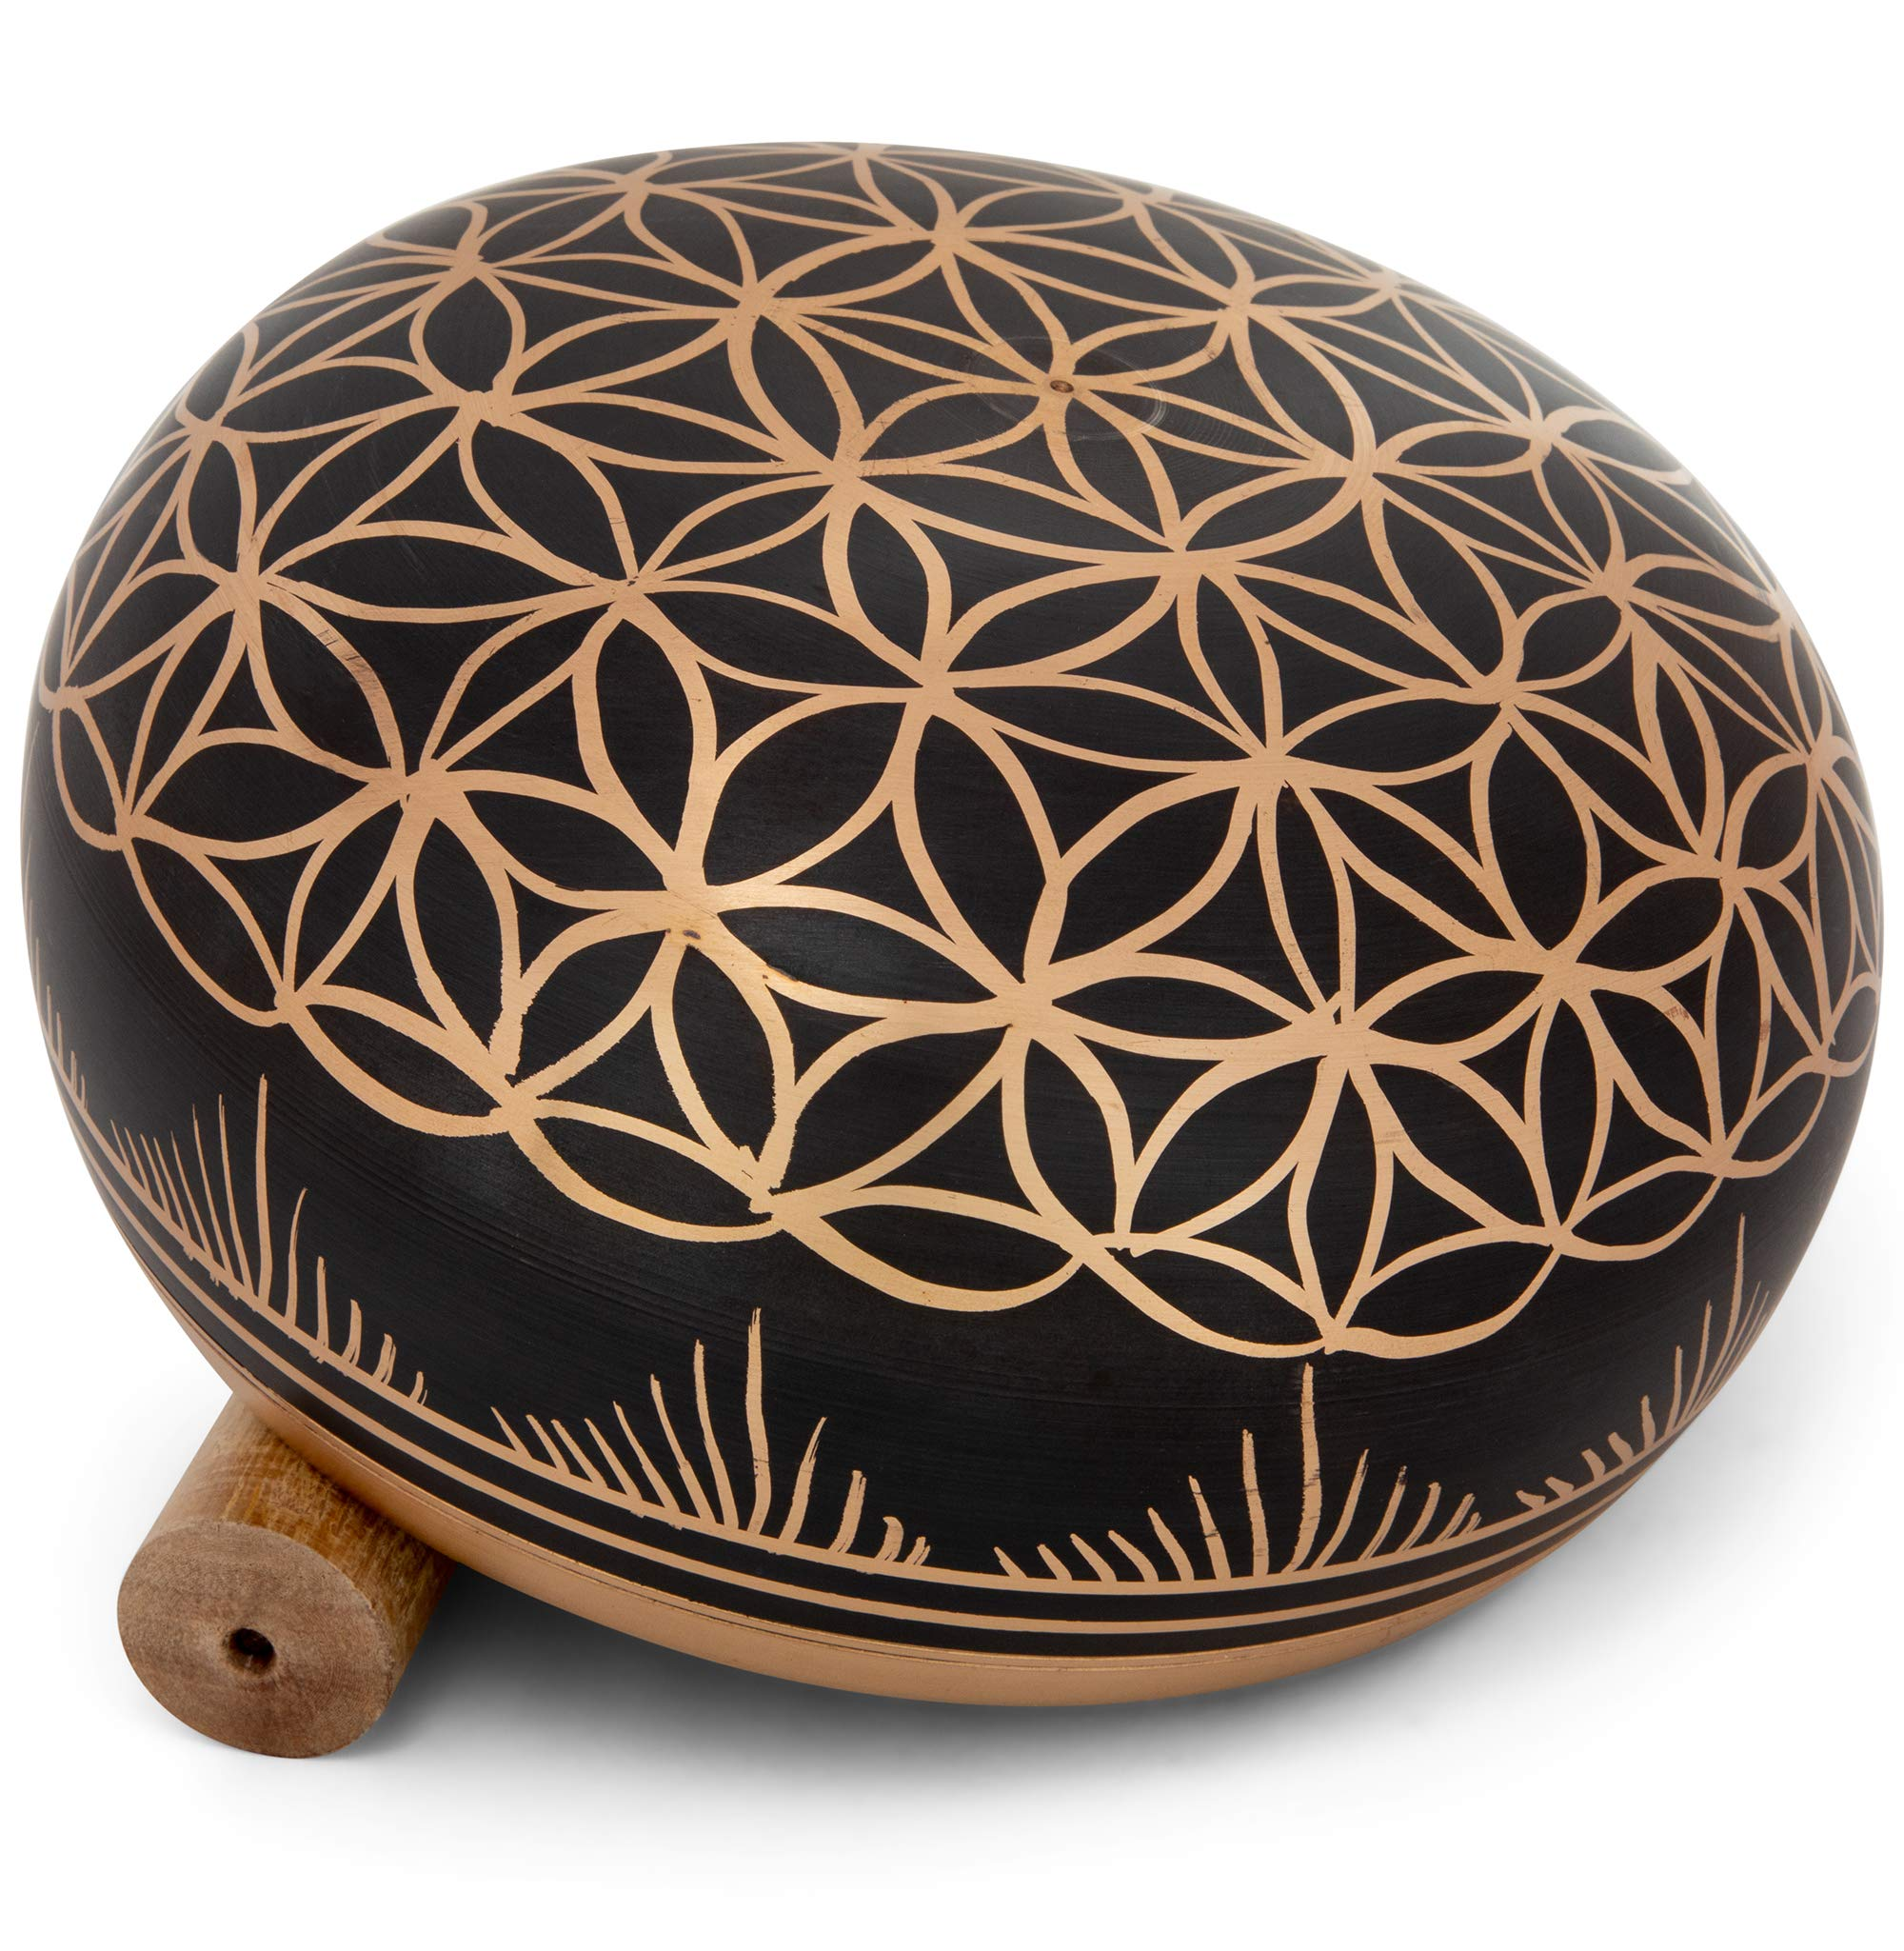 Meditative 6 inch Flower of Life Design Singing Bowl with Mallet and Cushion. Tibetan Sound Bowls for Energy Healing, Mindfulness, Grounding, Zen, Meditation, Exquisite, Unique Home Decor and Gift Set by Telsha